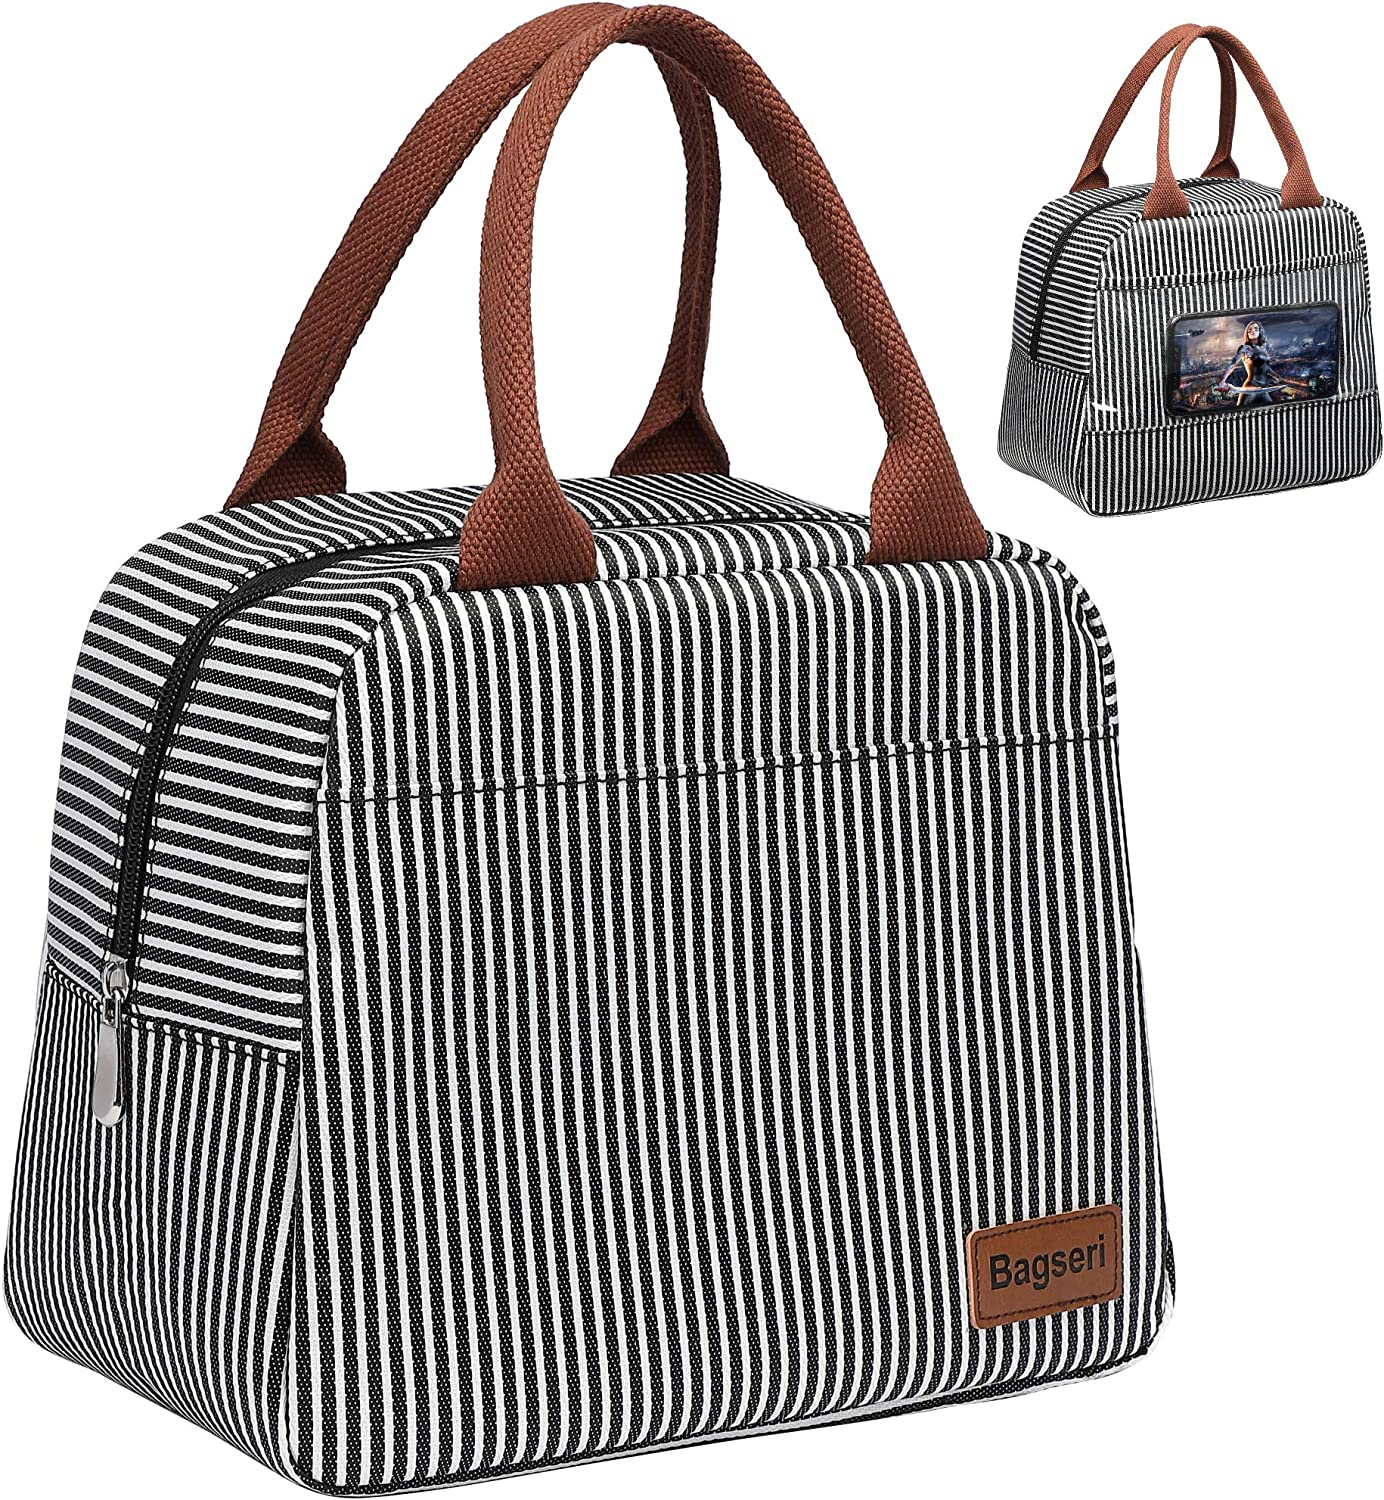 Lunch Bag Bagseri Free shipping on posting reviews Insulated Bags and Oklahoma City Mall Men with for Women